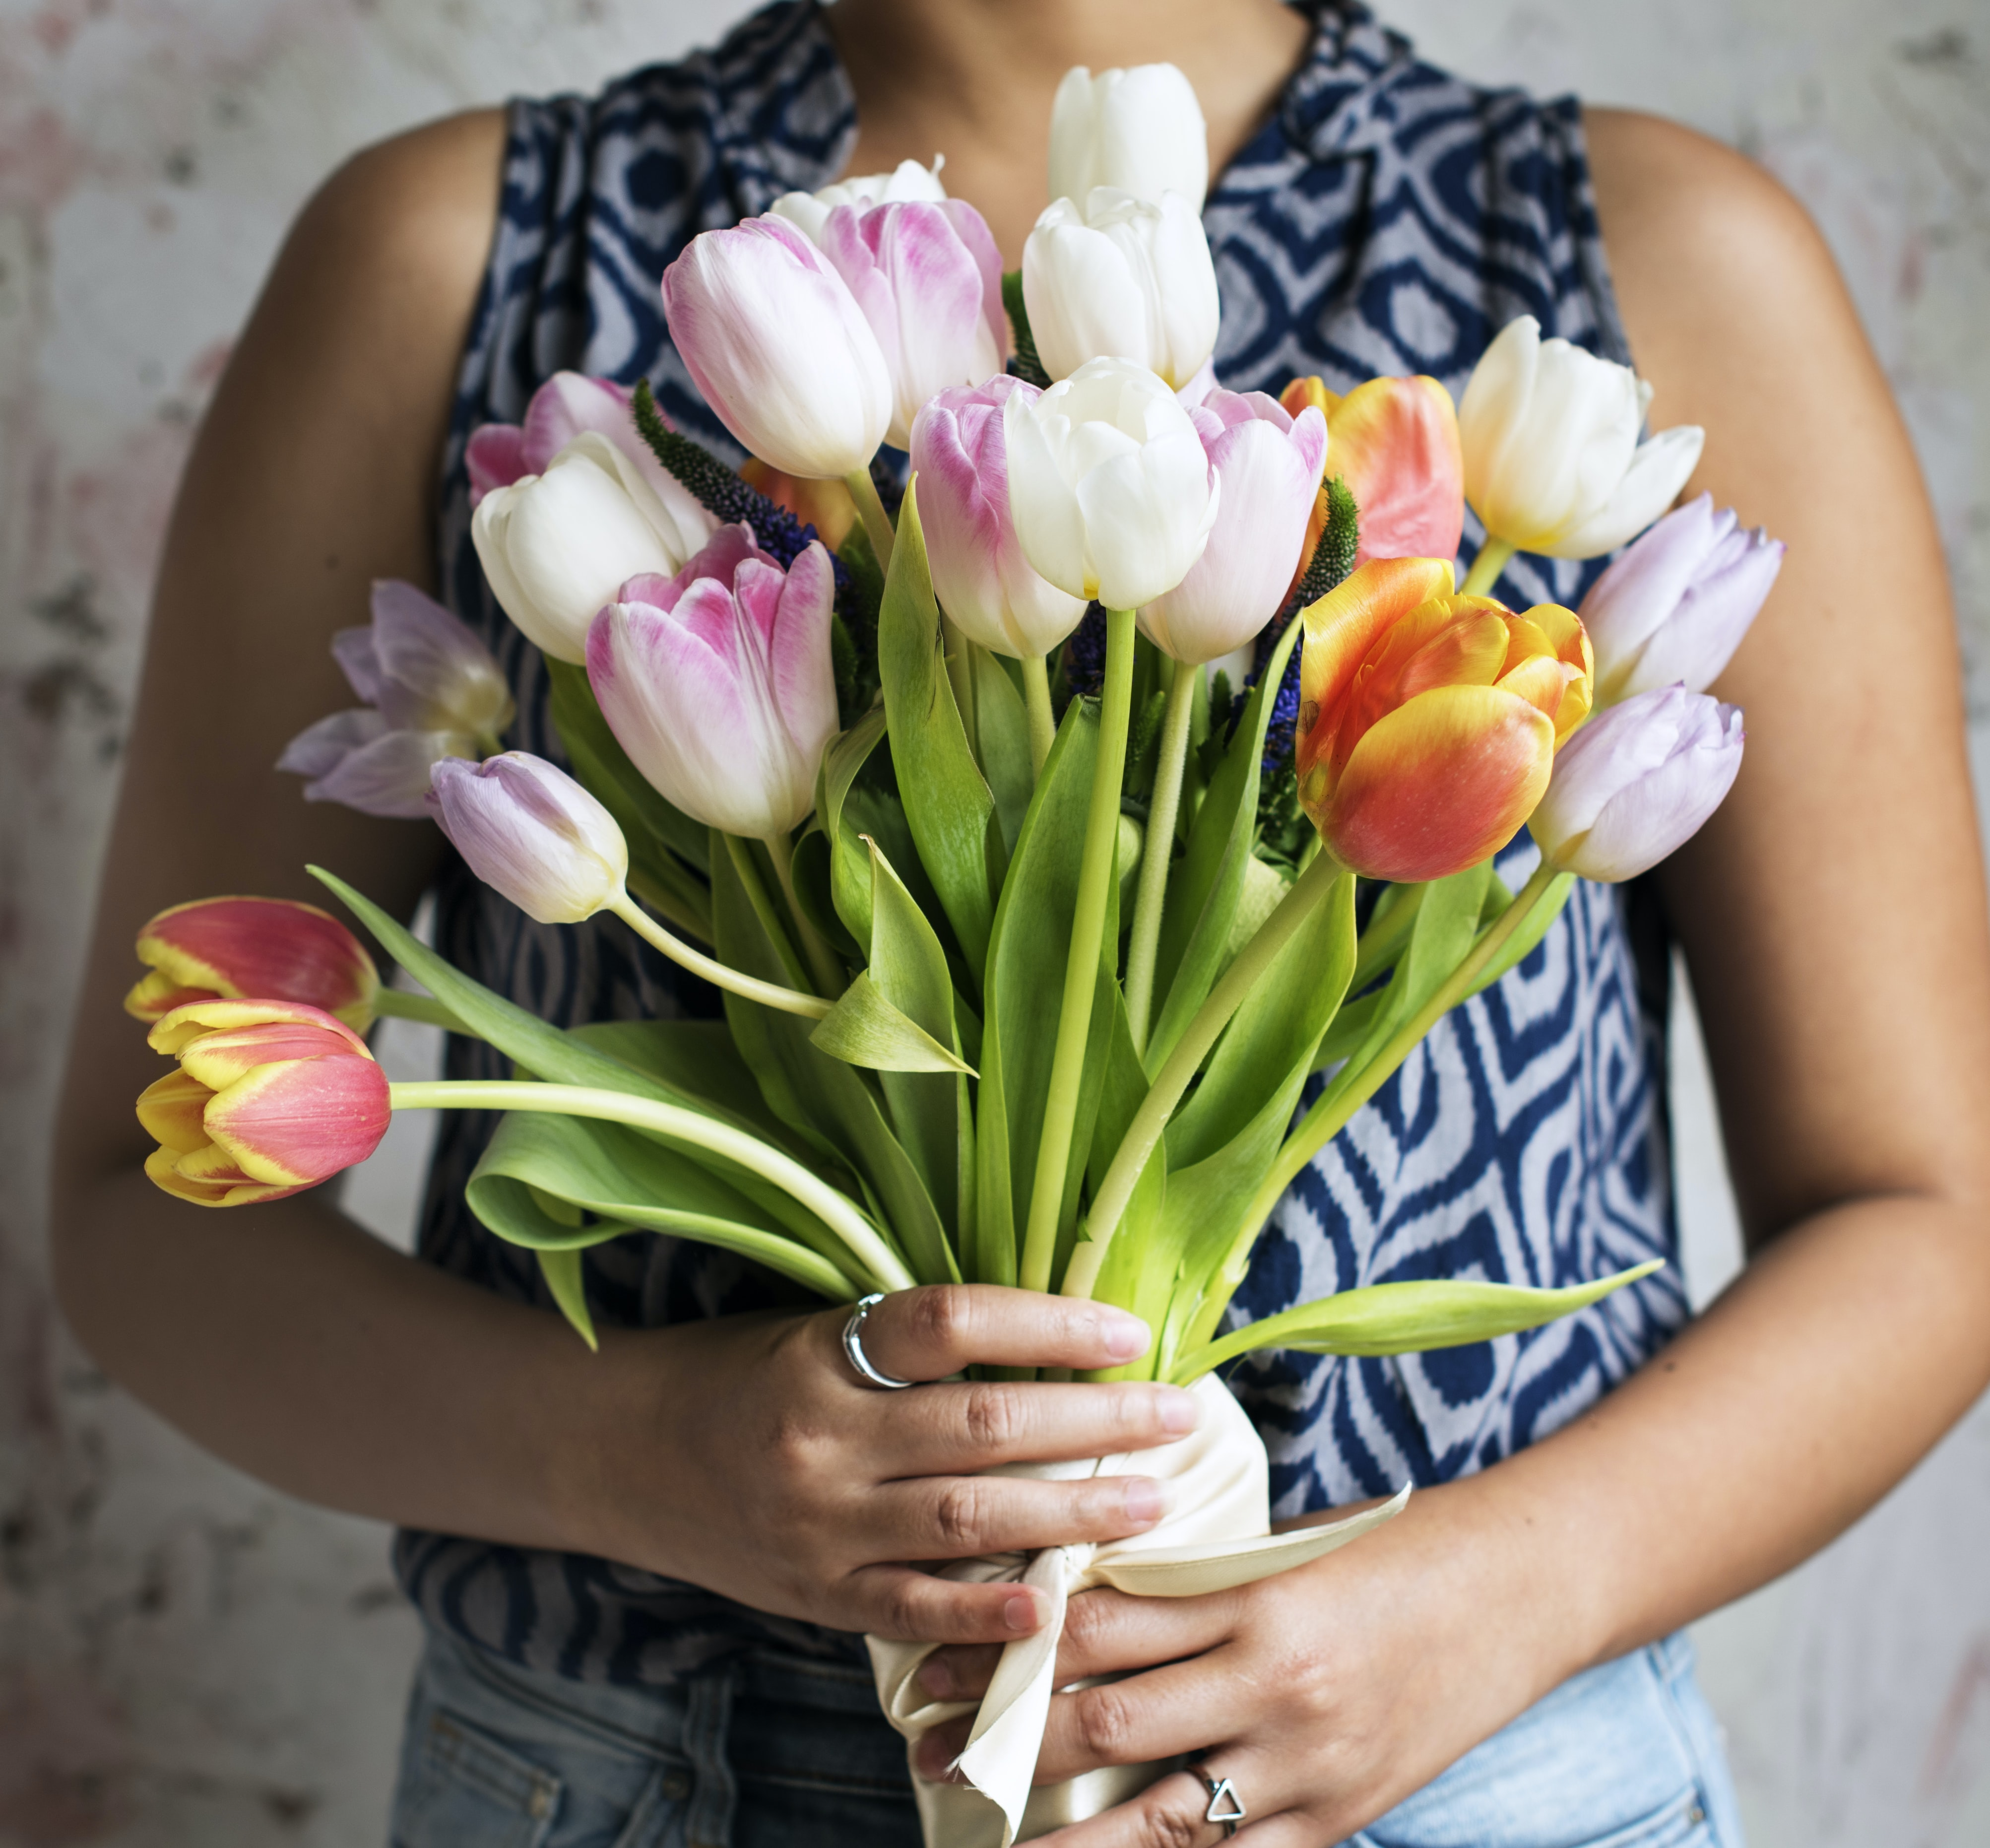 A woman holding a large bouquet of tulips in front of her chest